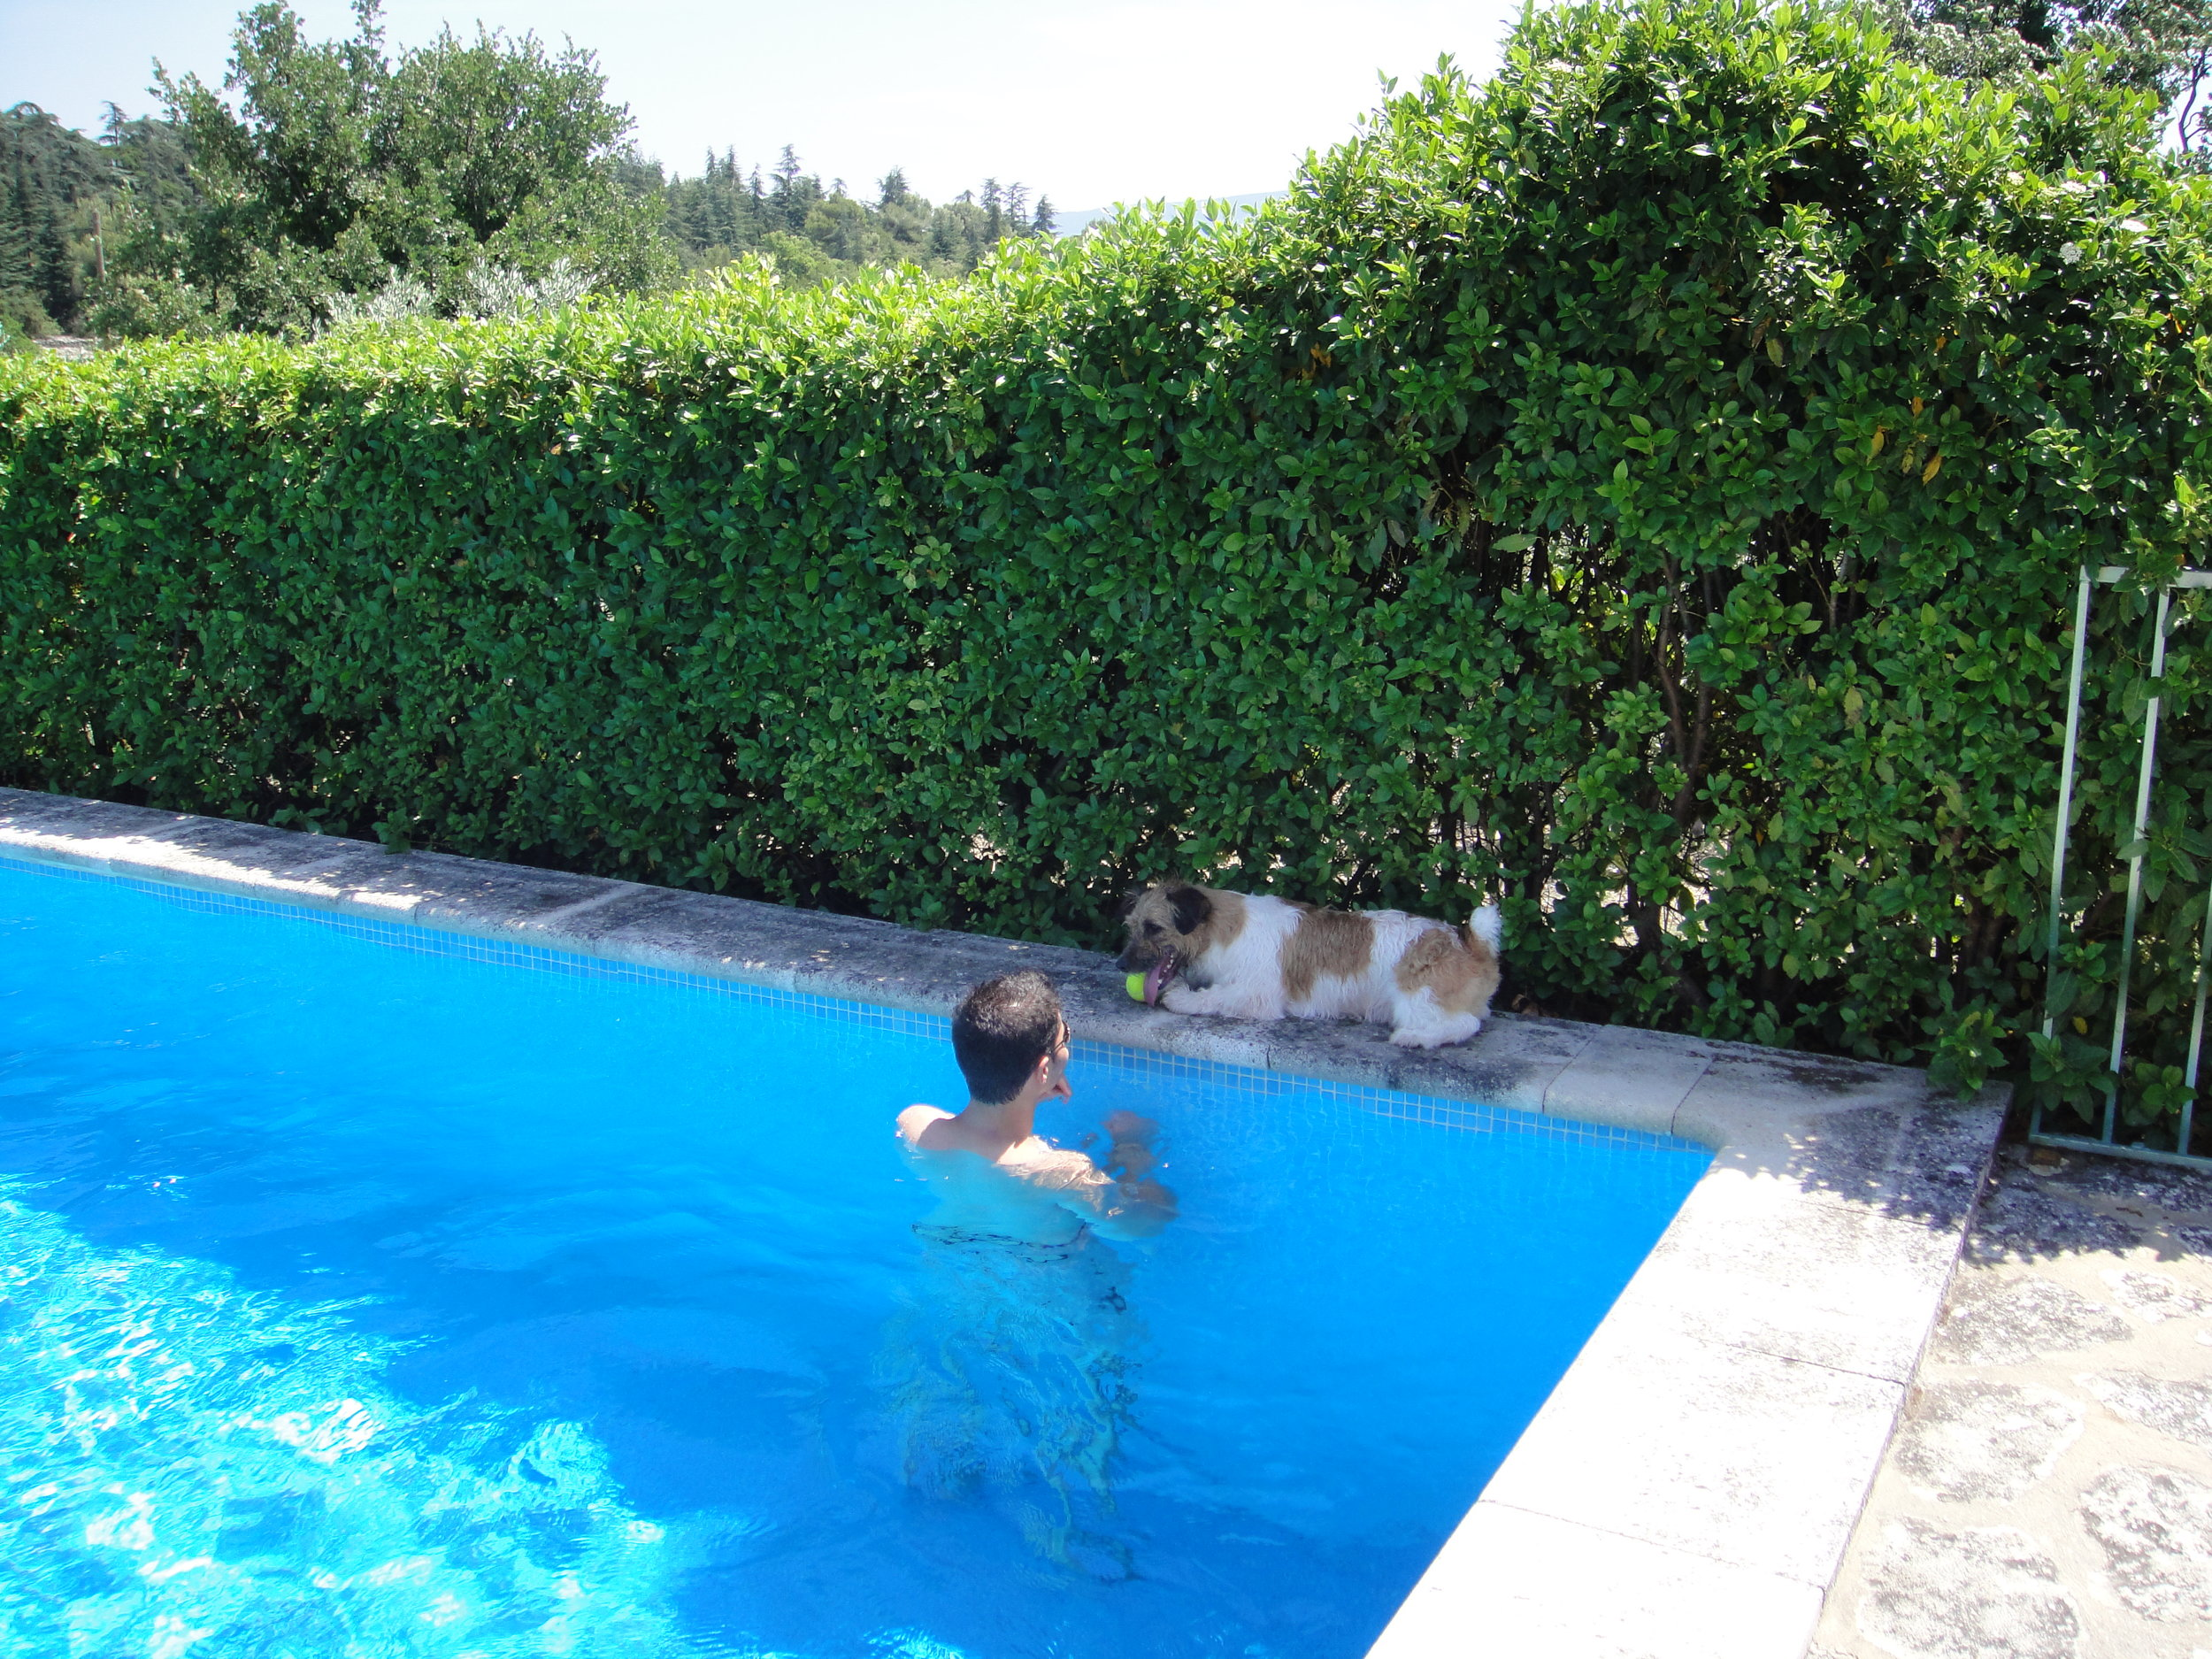 Enrique loved the swimming pool.